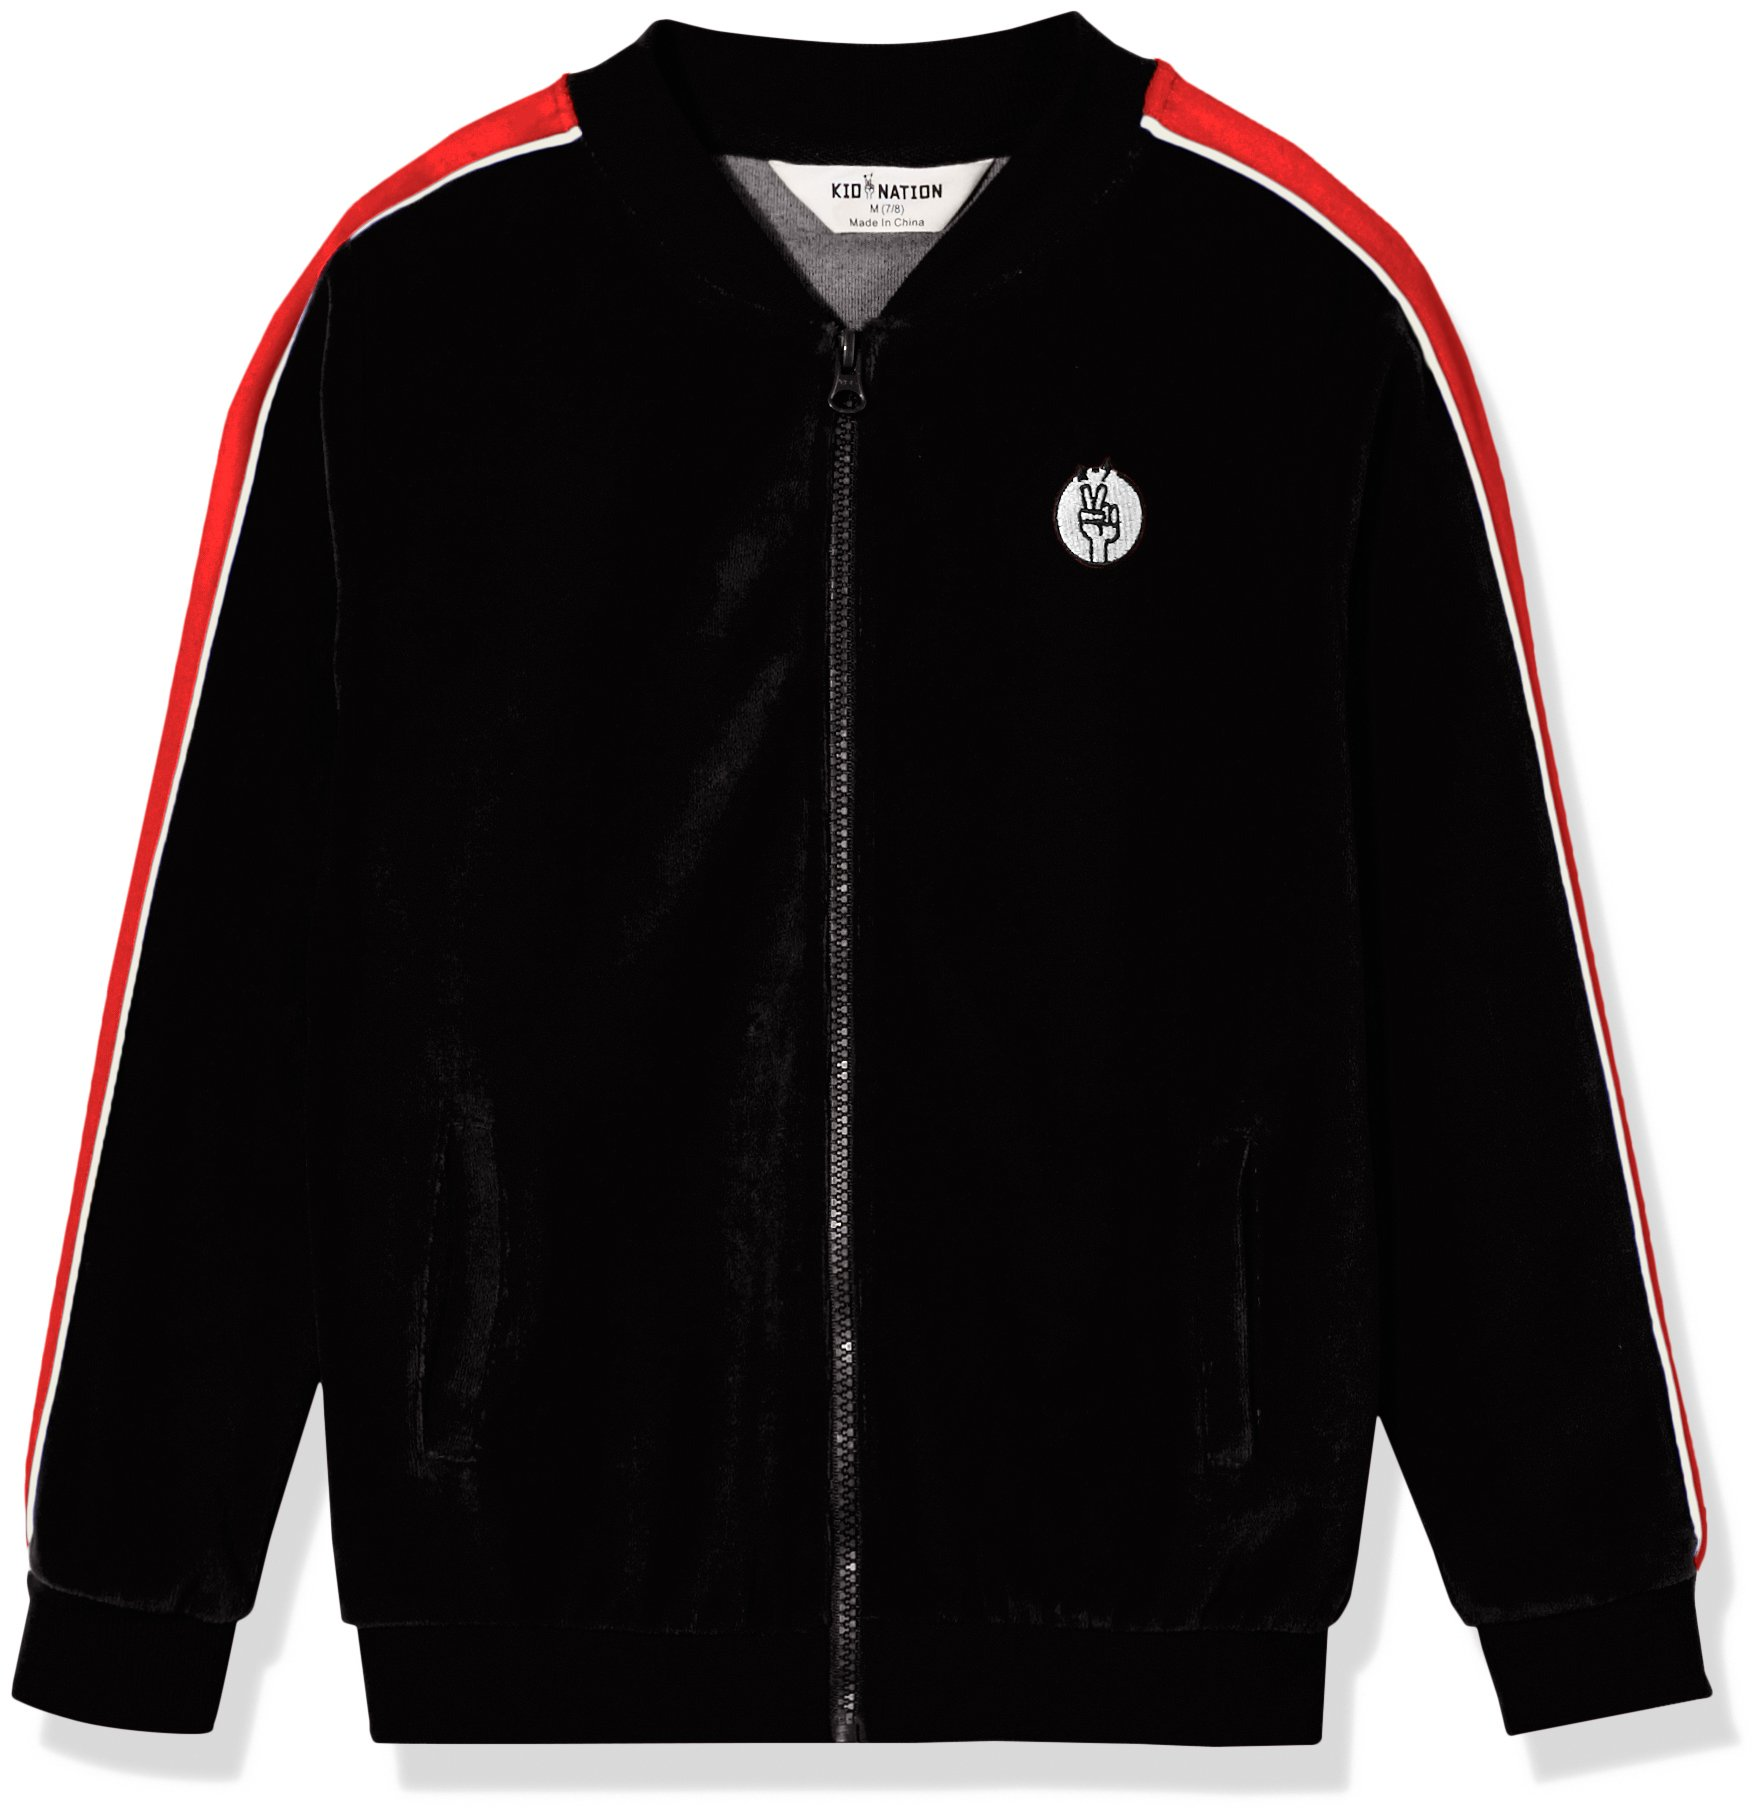 Kid Nation Kid's Cozy Velour Track Jacket for Boys and Girls M Black/Red